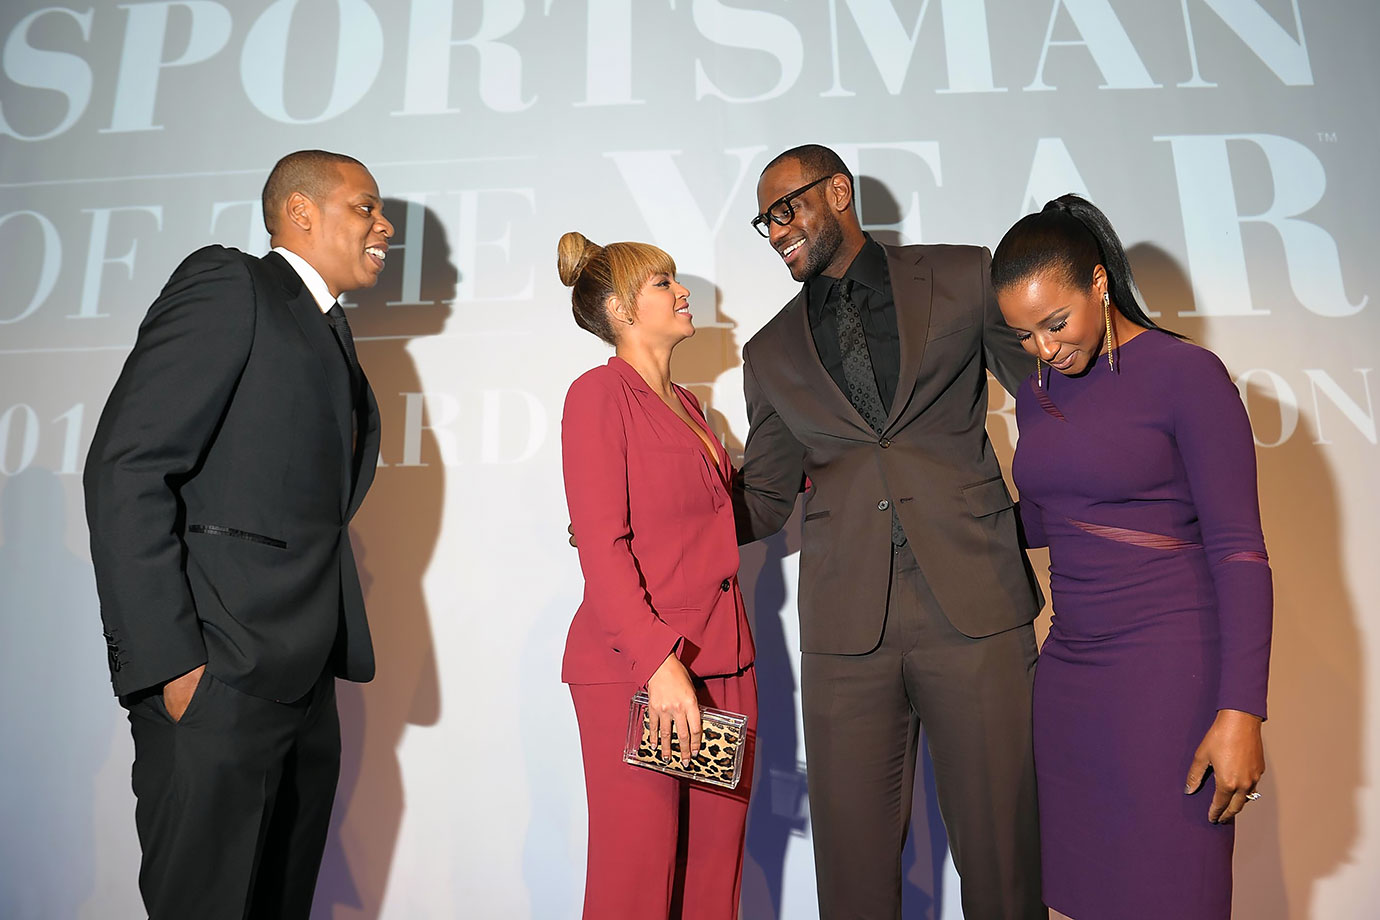 It shouldn't come as much of a surprise that superstar LeBron James has a pretty enviable rotation of famous friends. Case in point: The 2012 Sports Illustrated Sportsman of the Year Award Presentation. In the crowd while James accepted his honor were friends Jay-Z and Beyoncé—two stars anyone would want in their corner.